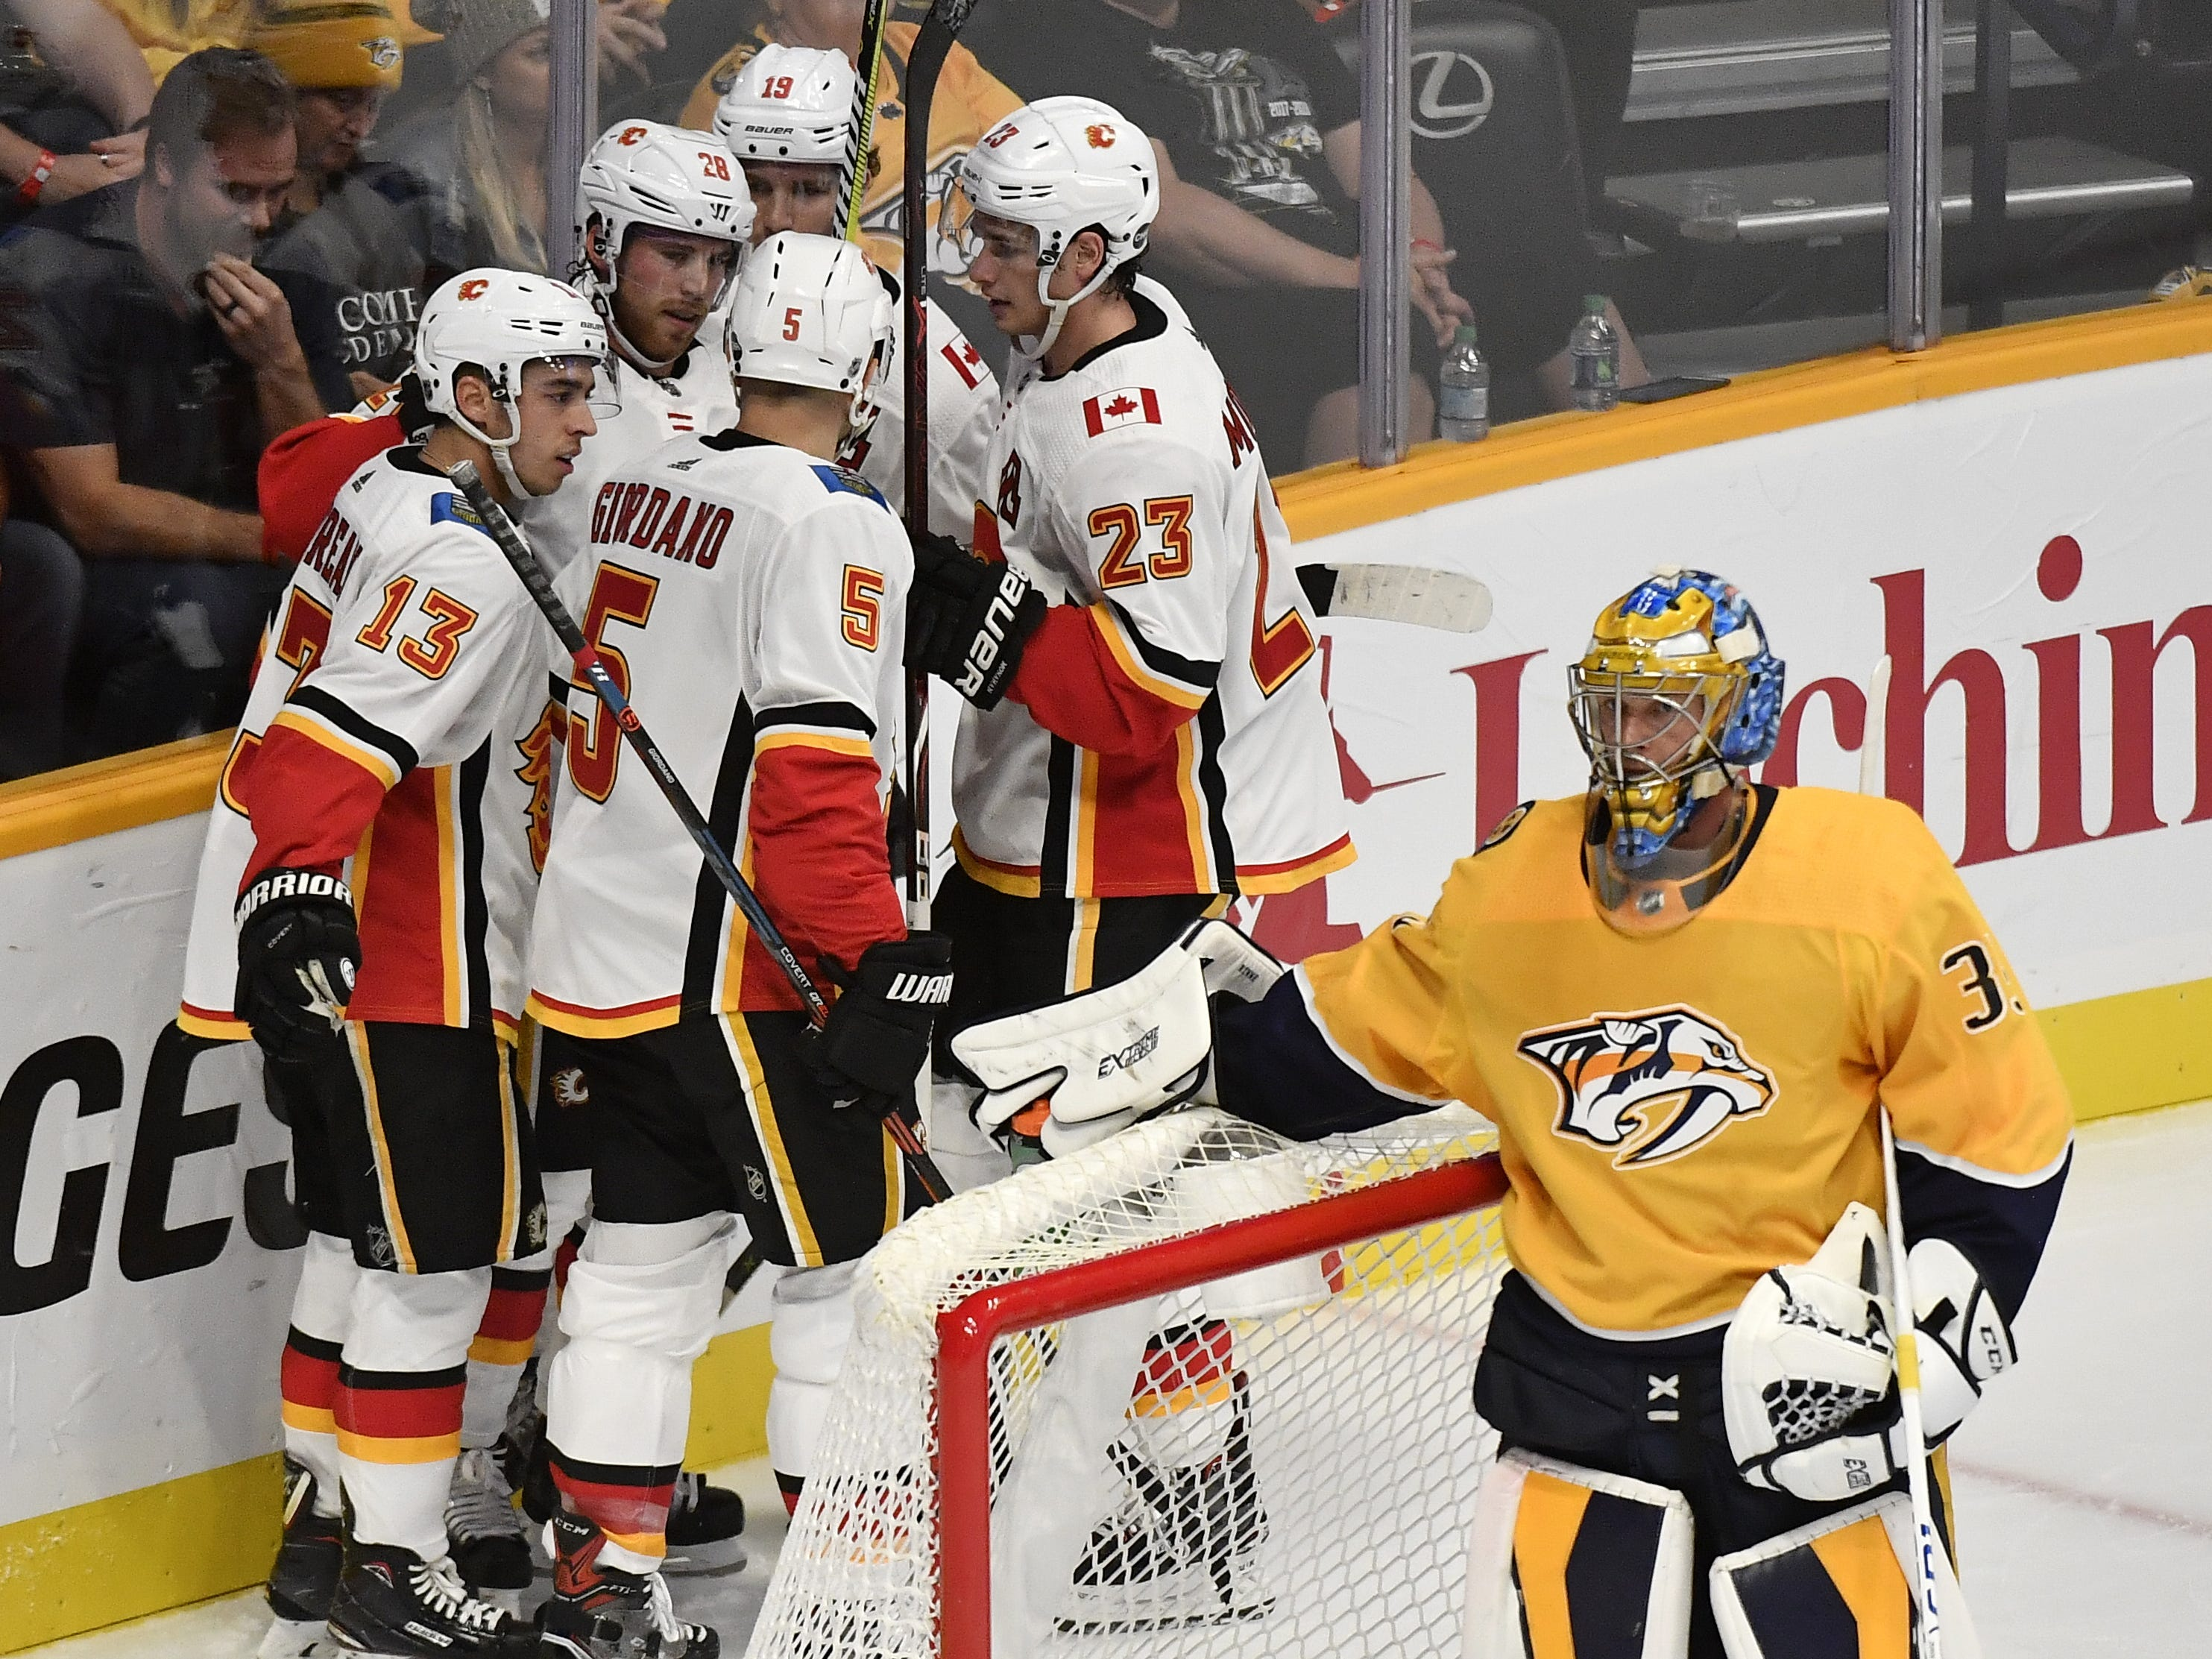 Oct. 9: Flames 3, Preds 0: The Flames celebrate the goal by center Elias Lindholm (28) behind Nashville Predators goaltender Pekka Rinne (35) in the first period of the home opener at Bridgestone Arena in Nashville, Tenn., Tuesday, Oct. 9, 2018.